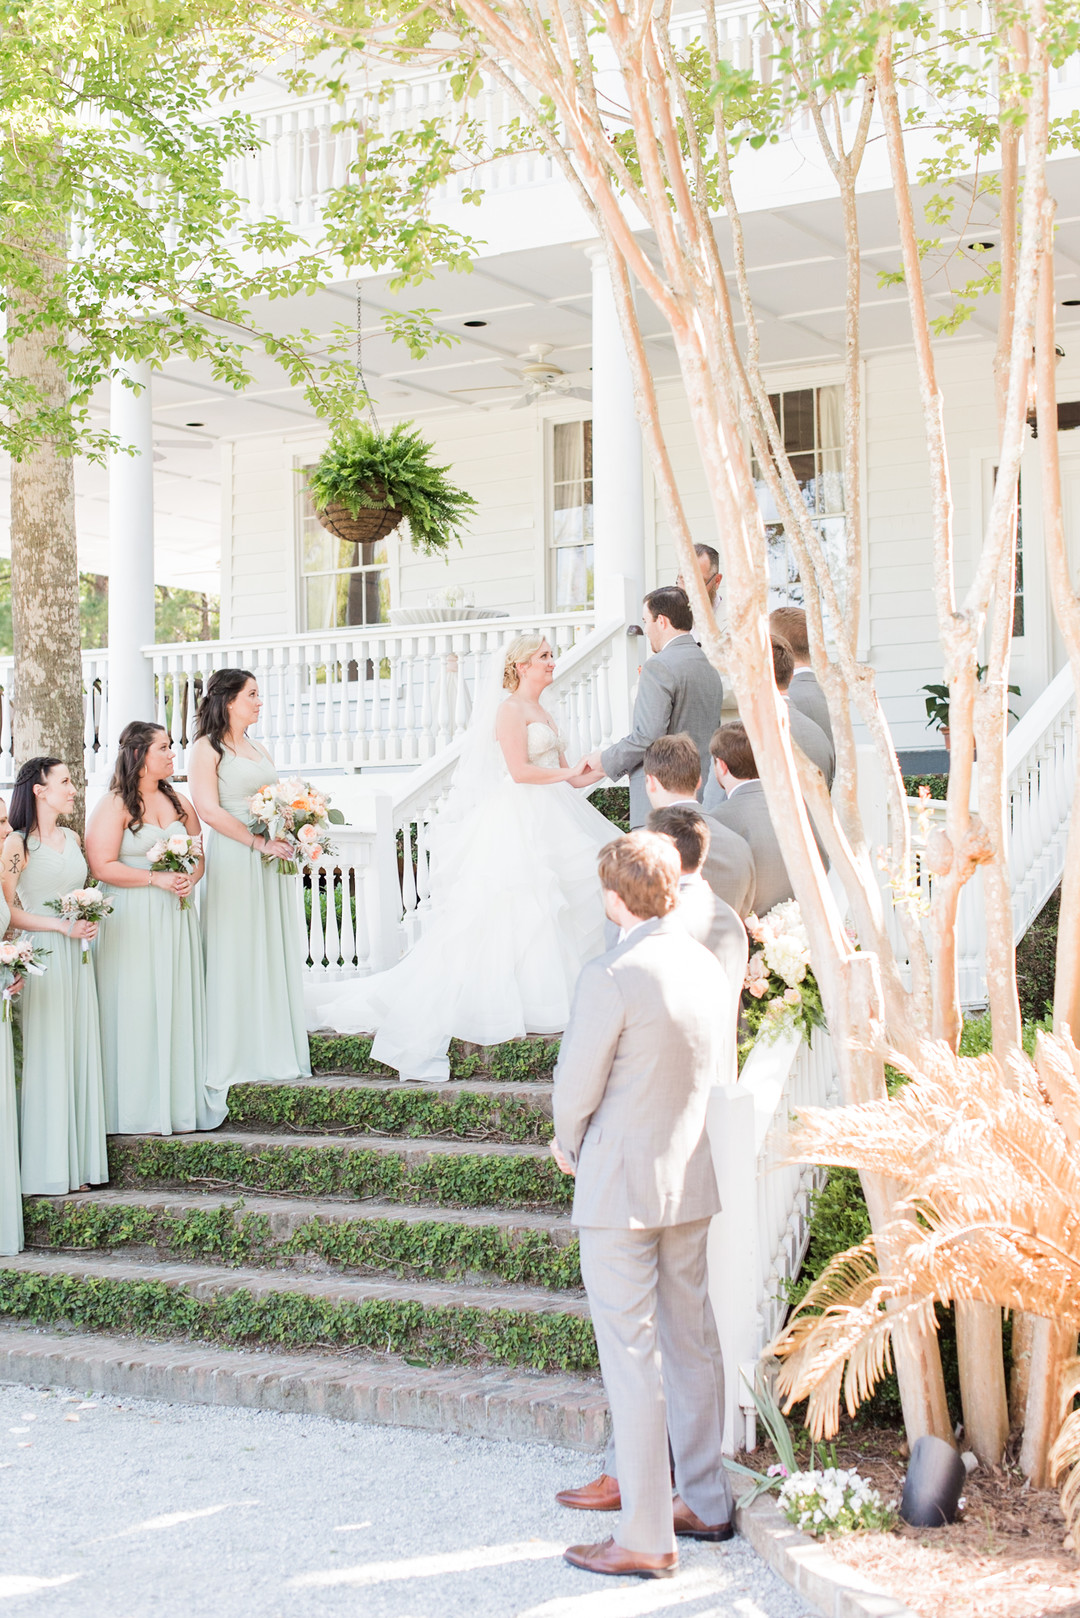 old-wide-awake-plantation-wedding-15.jpg